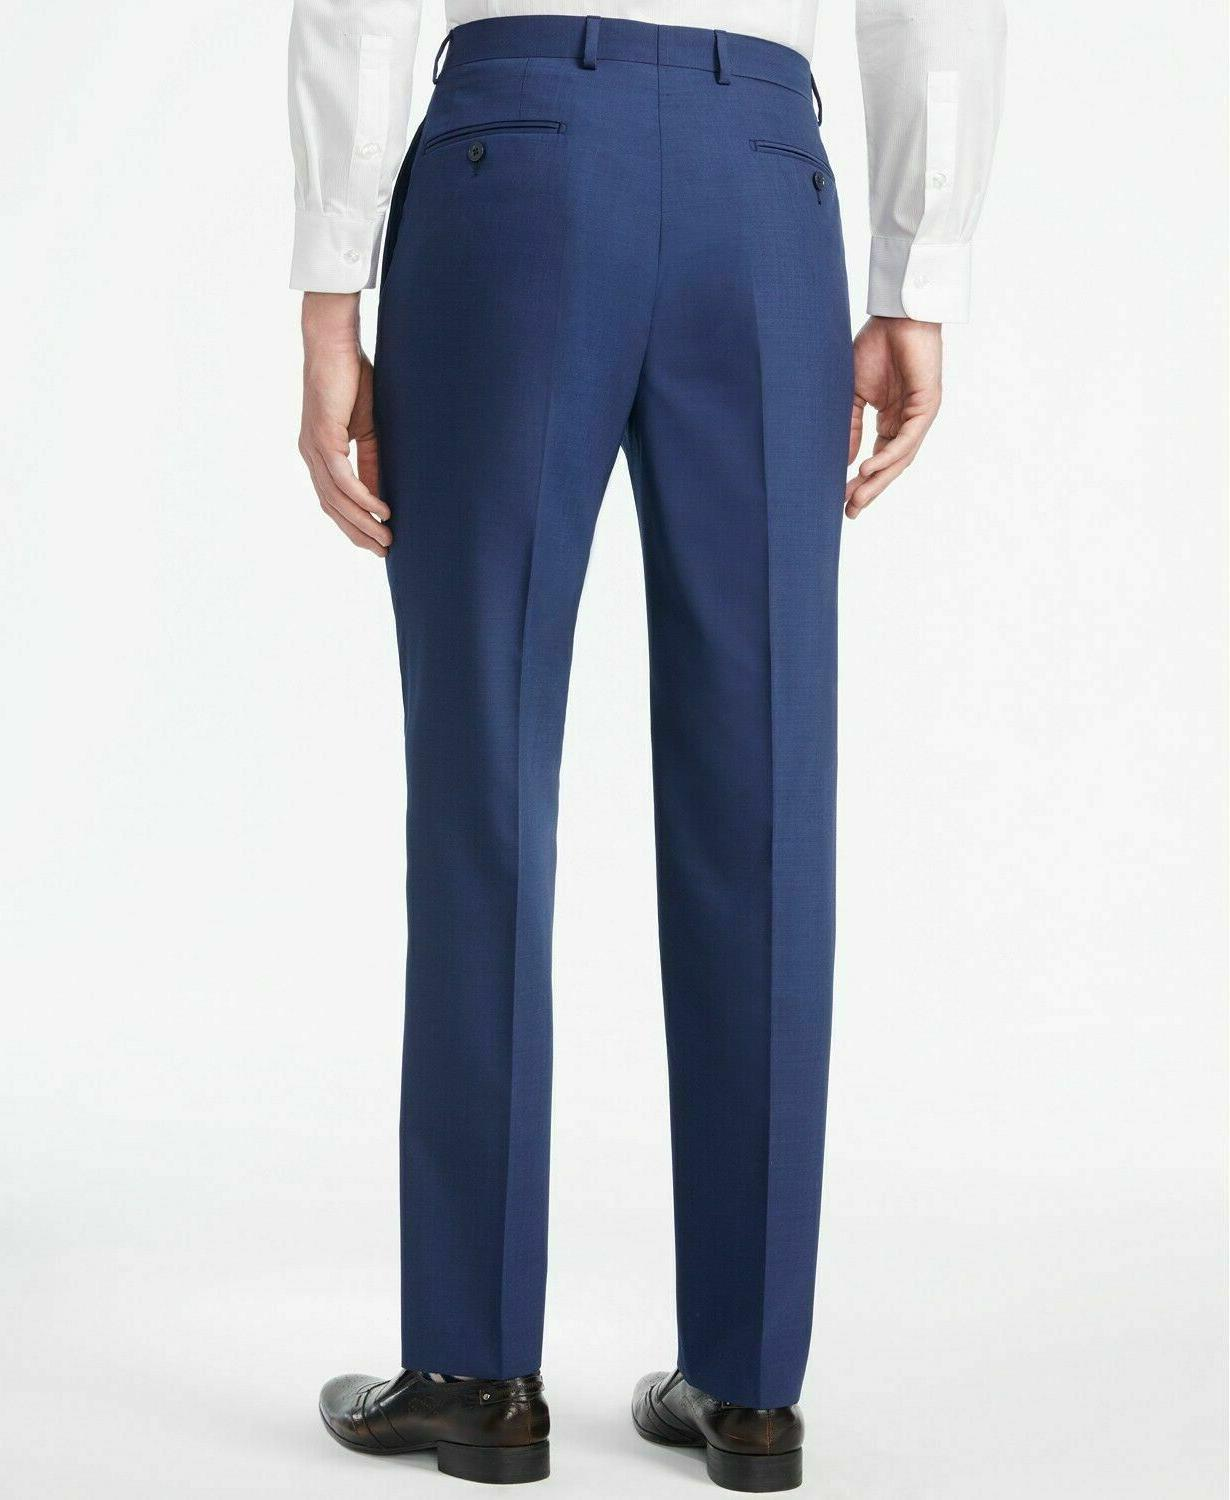 CALVIN KLEIN 10042 Fit MEN 2PC Suit 42R